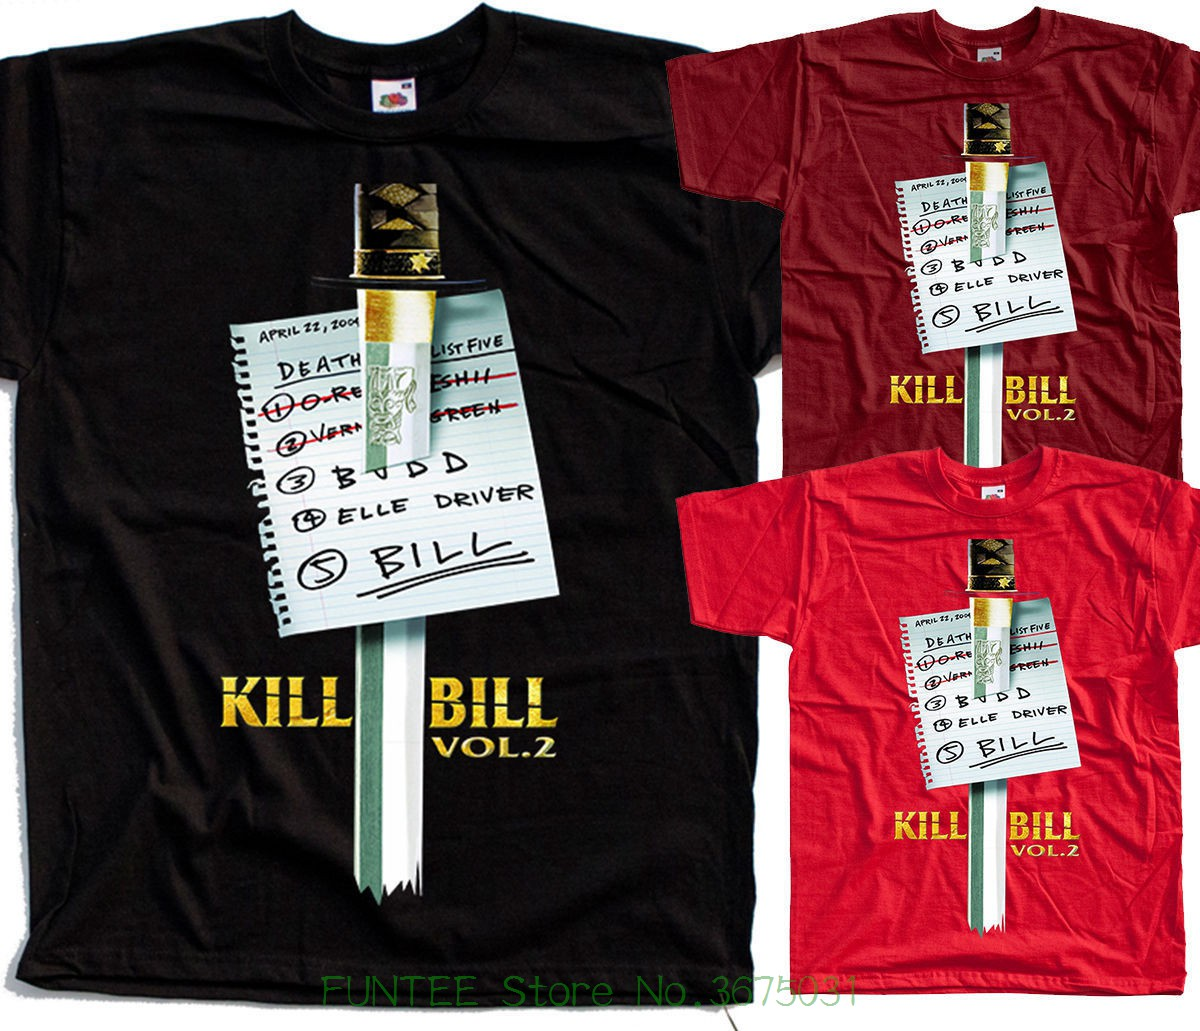 100-cotton-tee-shirt-for-men-kill-bill-v3-quentin-font-b-tarantino-b-font-t-shirt-black-brick-red-all-sizes-s-to-5xl